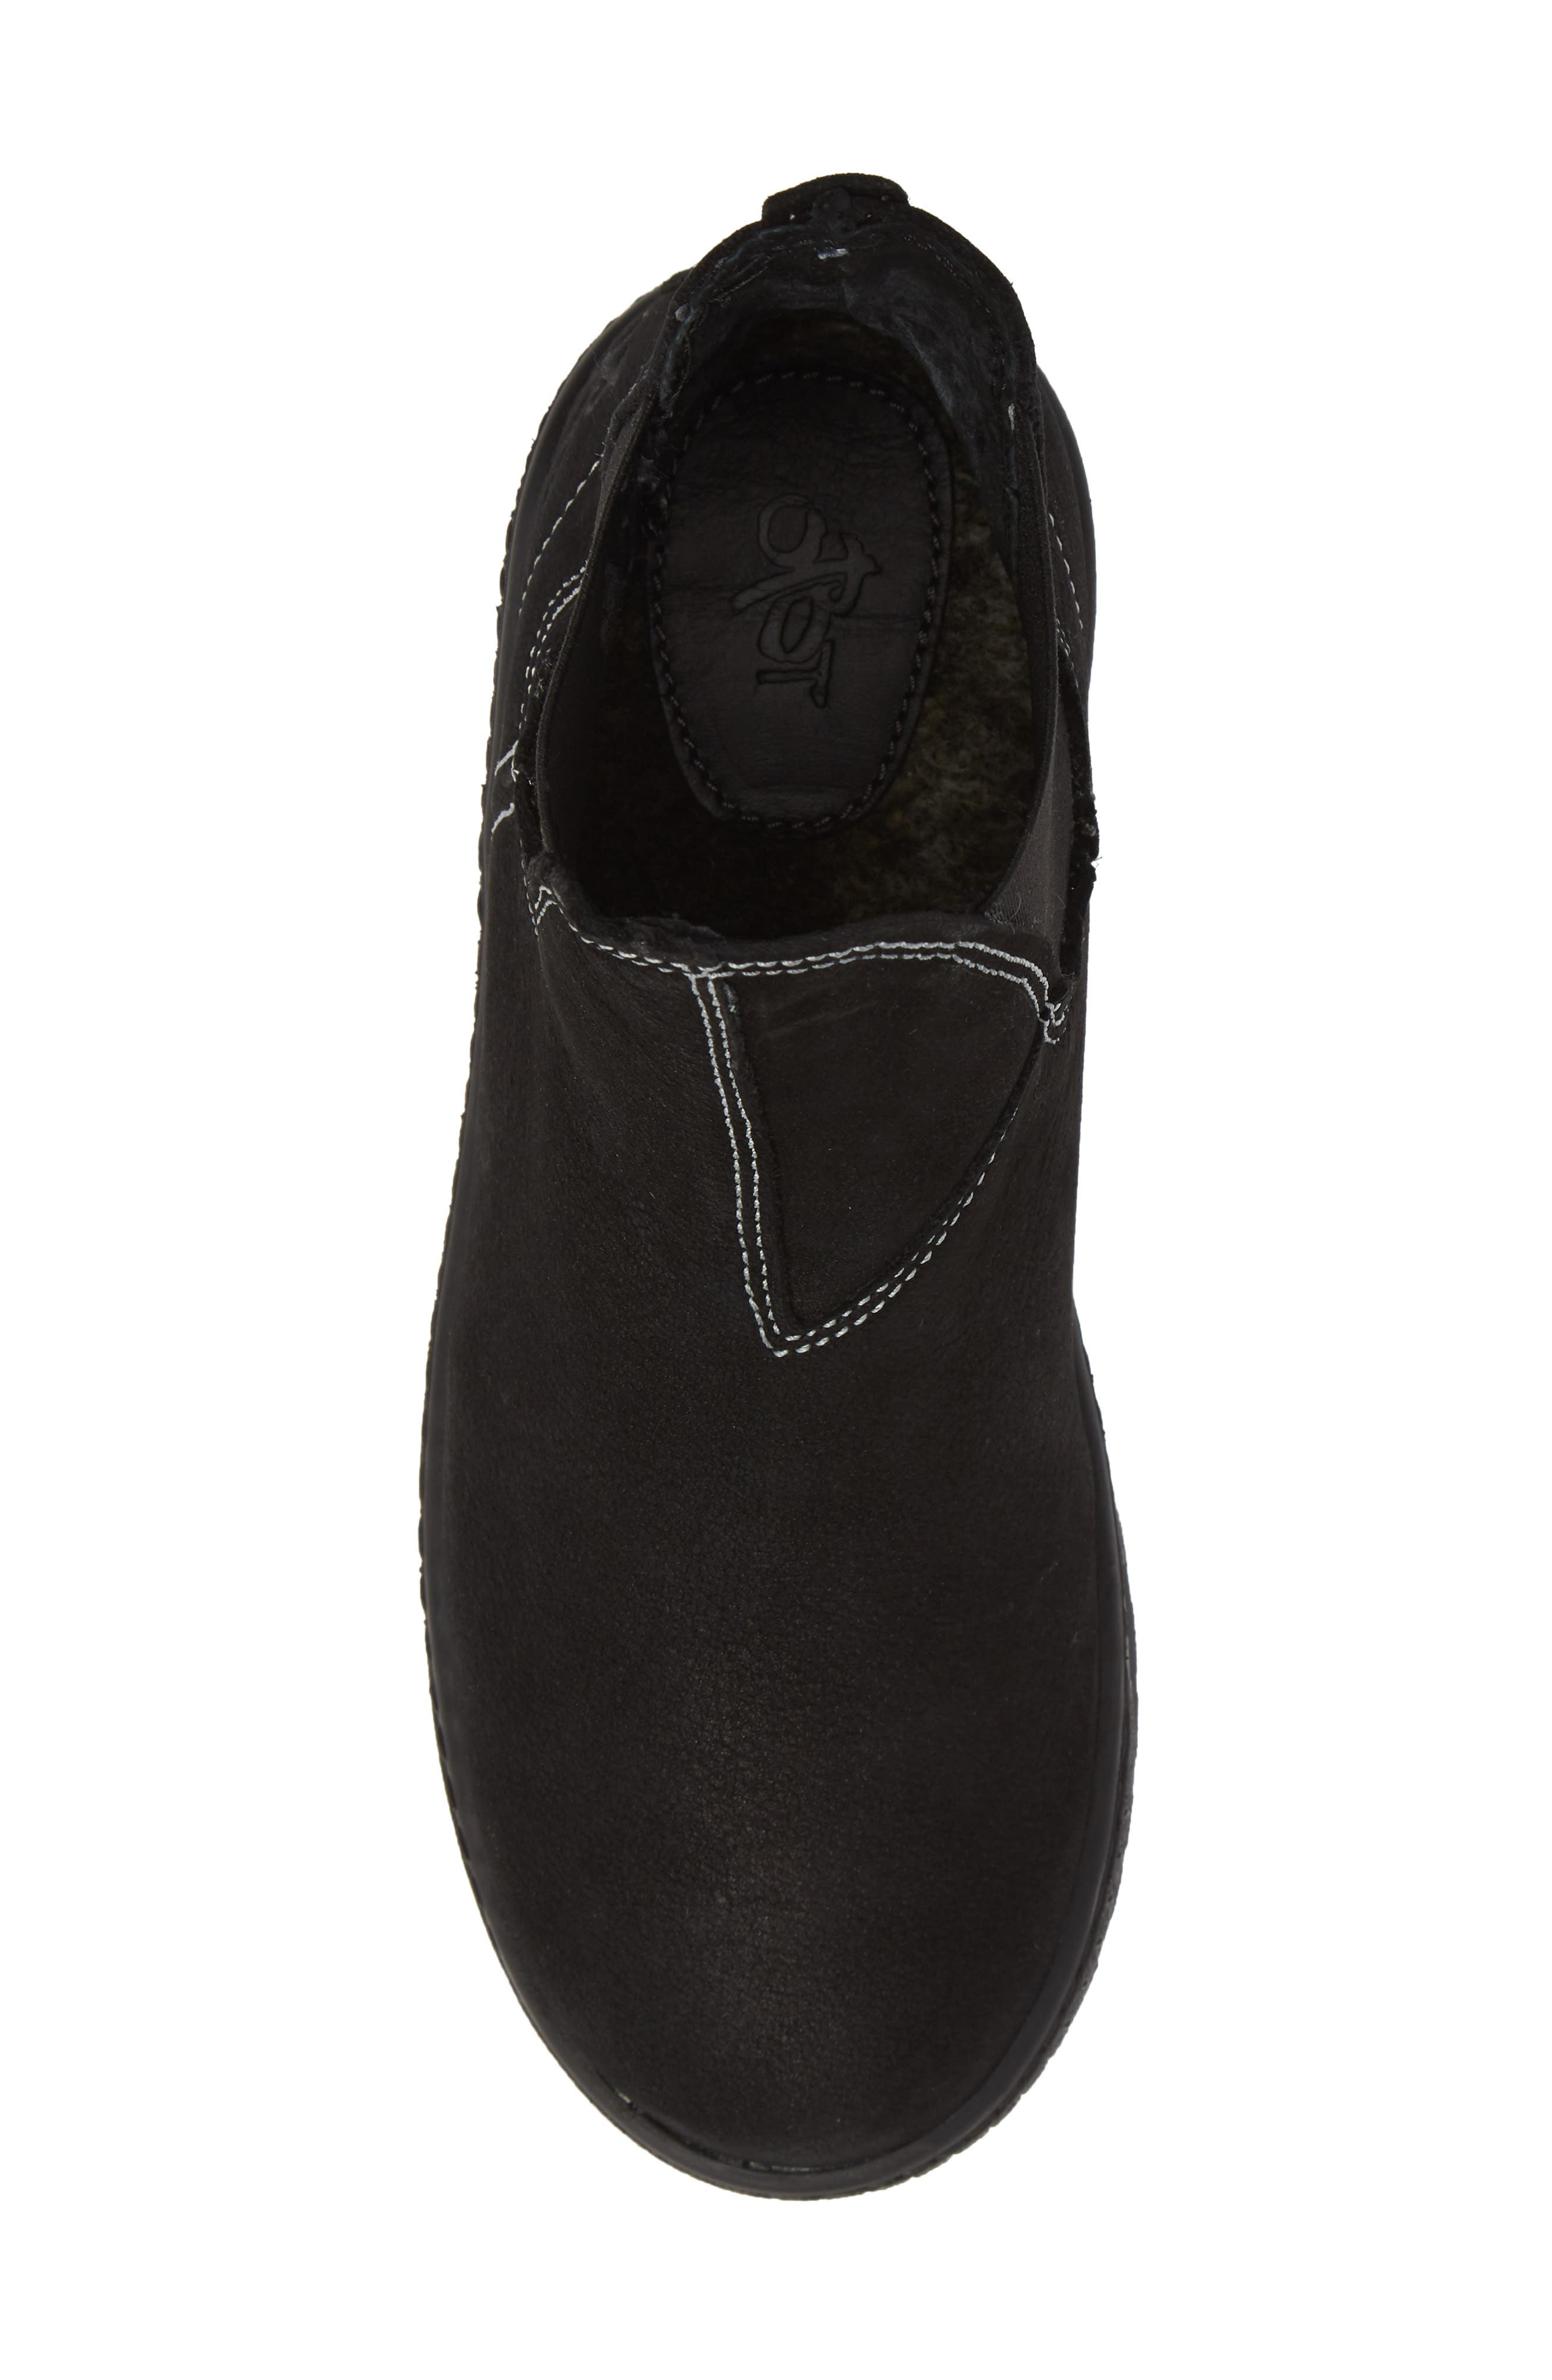 Embark Chelsea Bootie,                             Alternate thumbnail 5, color,                             BLACK LEATHER